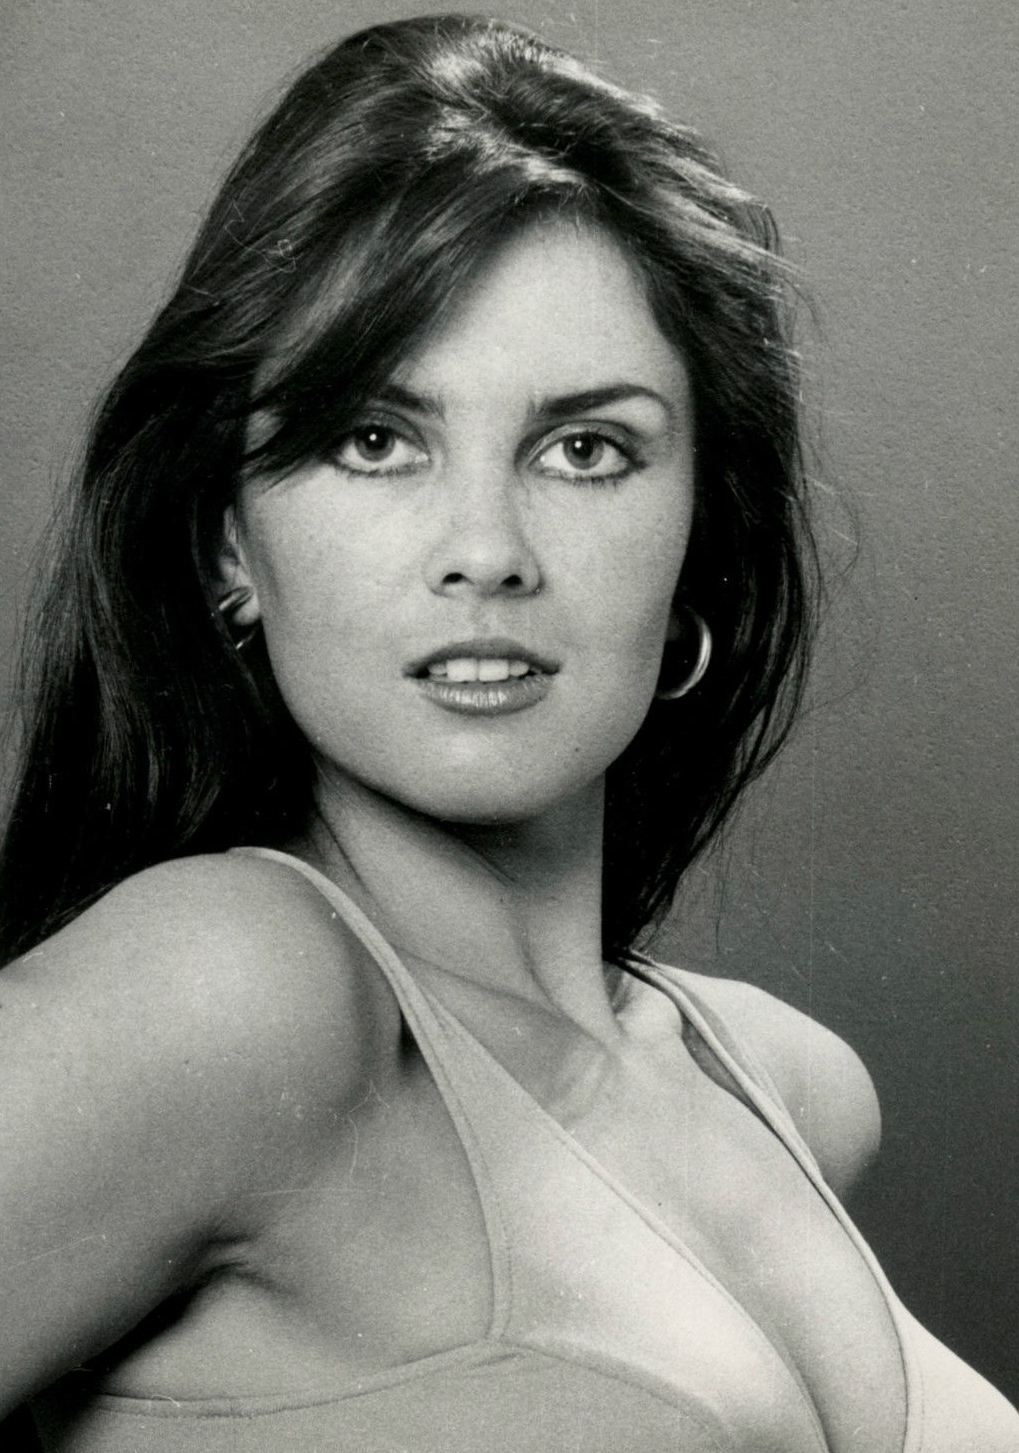 Discussion on this topic: Baby Margaretha, caroline-munro-born-1949/